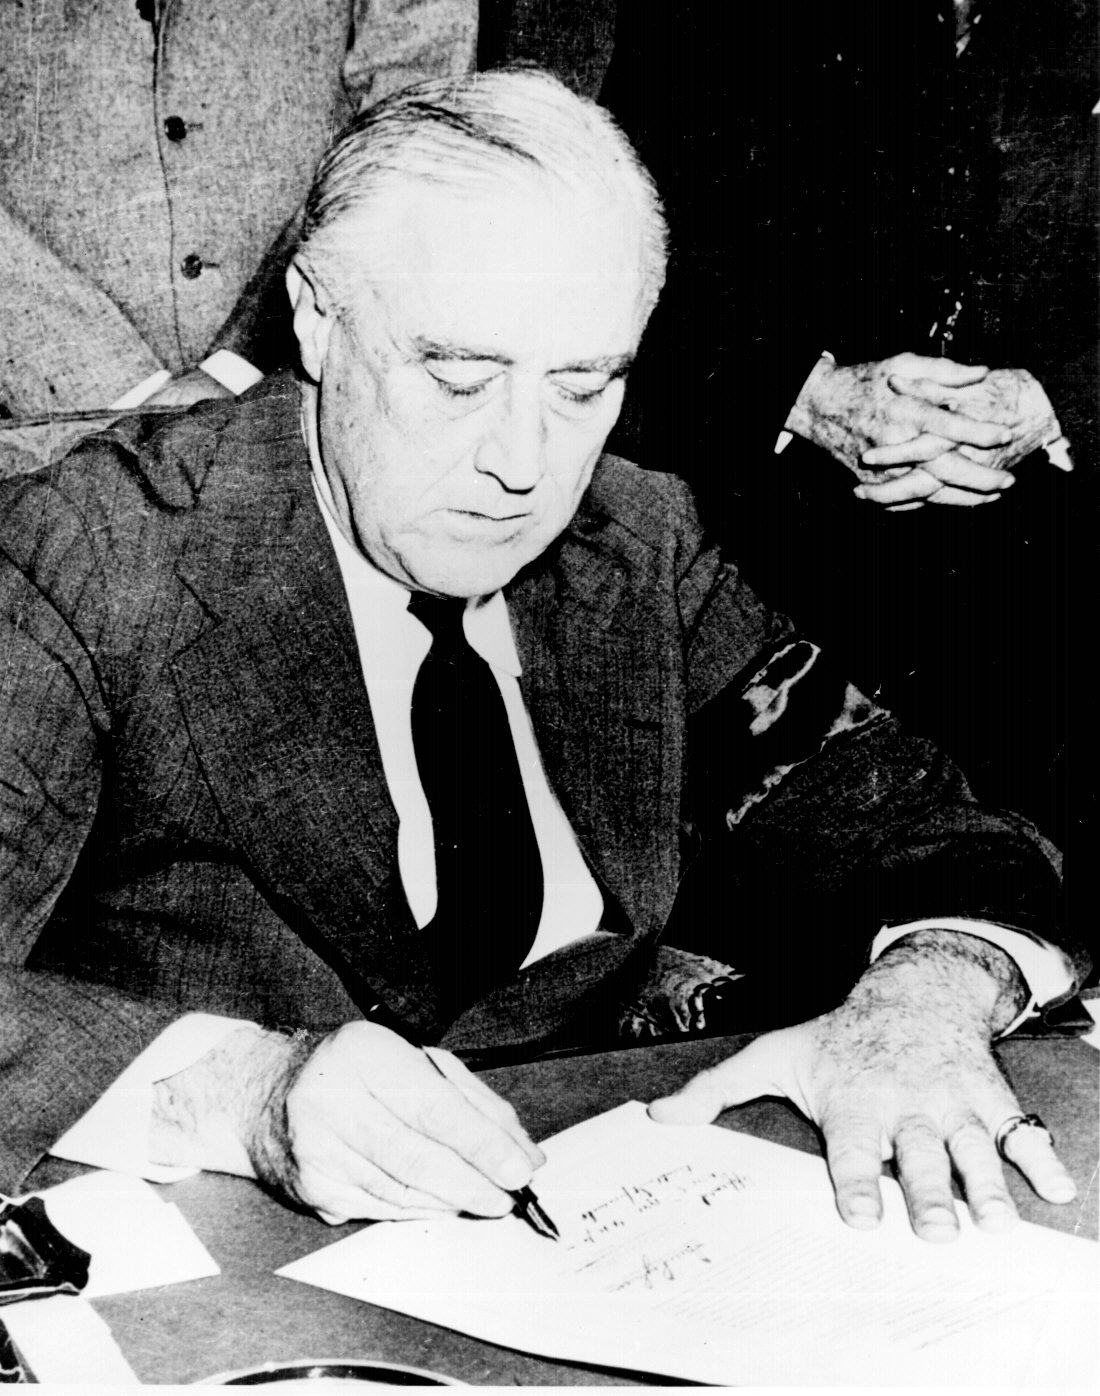 President Franklin D. Roosevelt signing the Declaration of War against Japan, December 8, 1941. By Marion Doss.